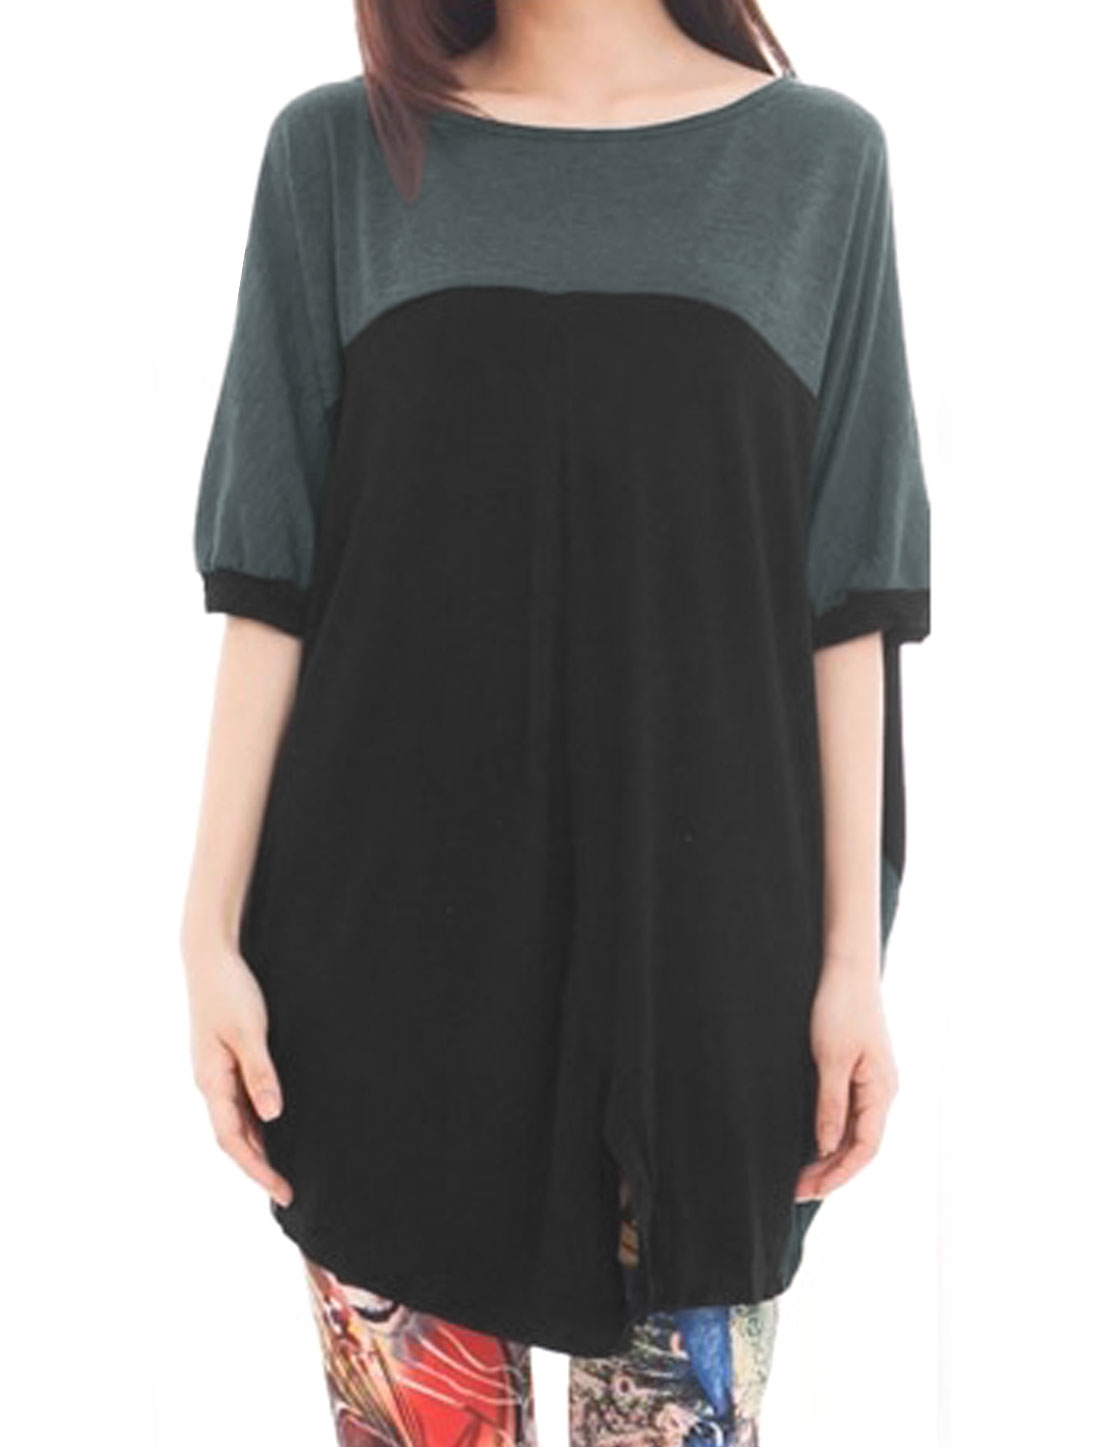 Women Split Front Contrast Color Batwing Tunic Top Black XS